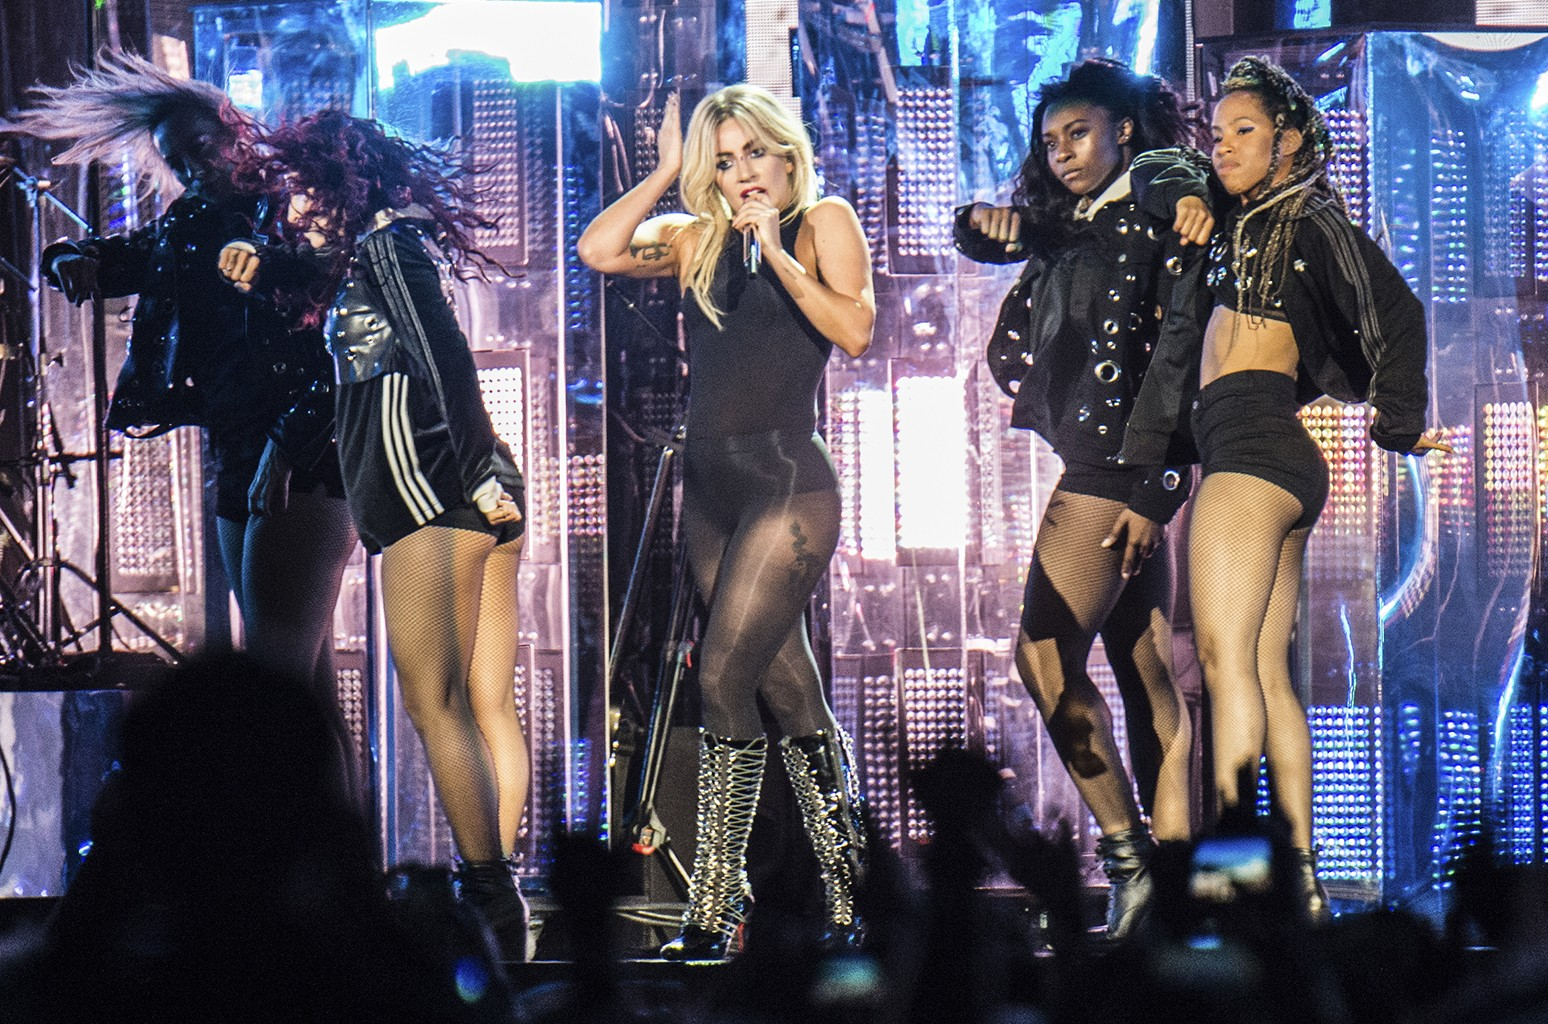 Lady Gaga performs at Coachella Music & Arts Festival at the Empire Polo Club on April 15, 2017 in Indio, Calif.